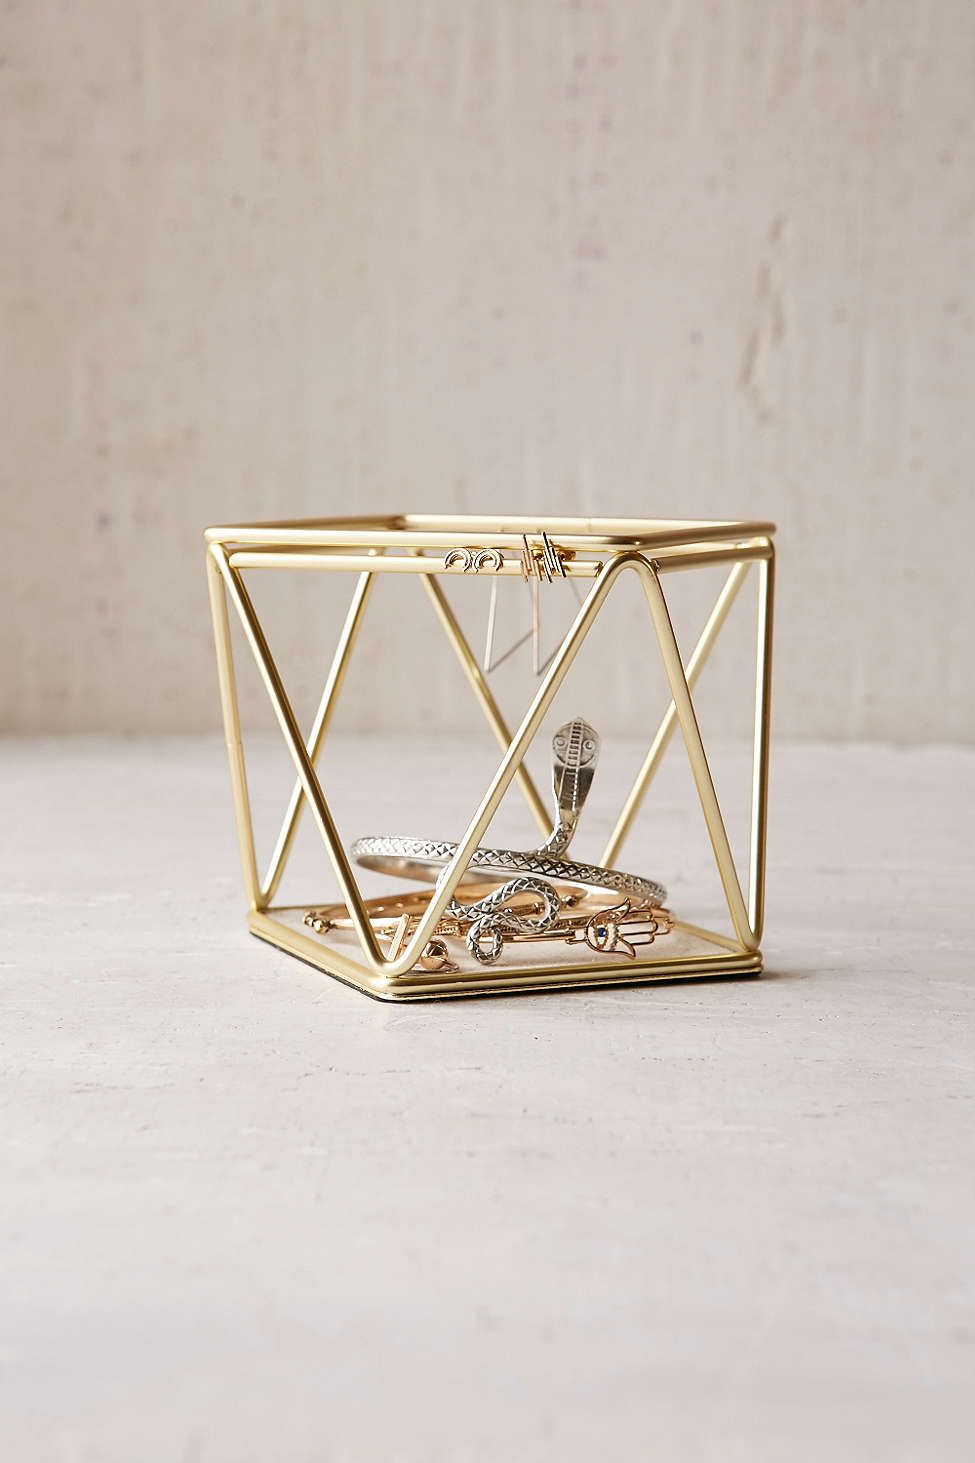 Umbra Prisma Small Jewelry Organizer Retail Merchandising